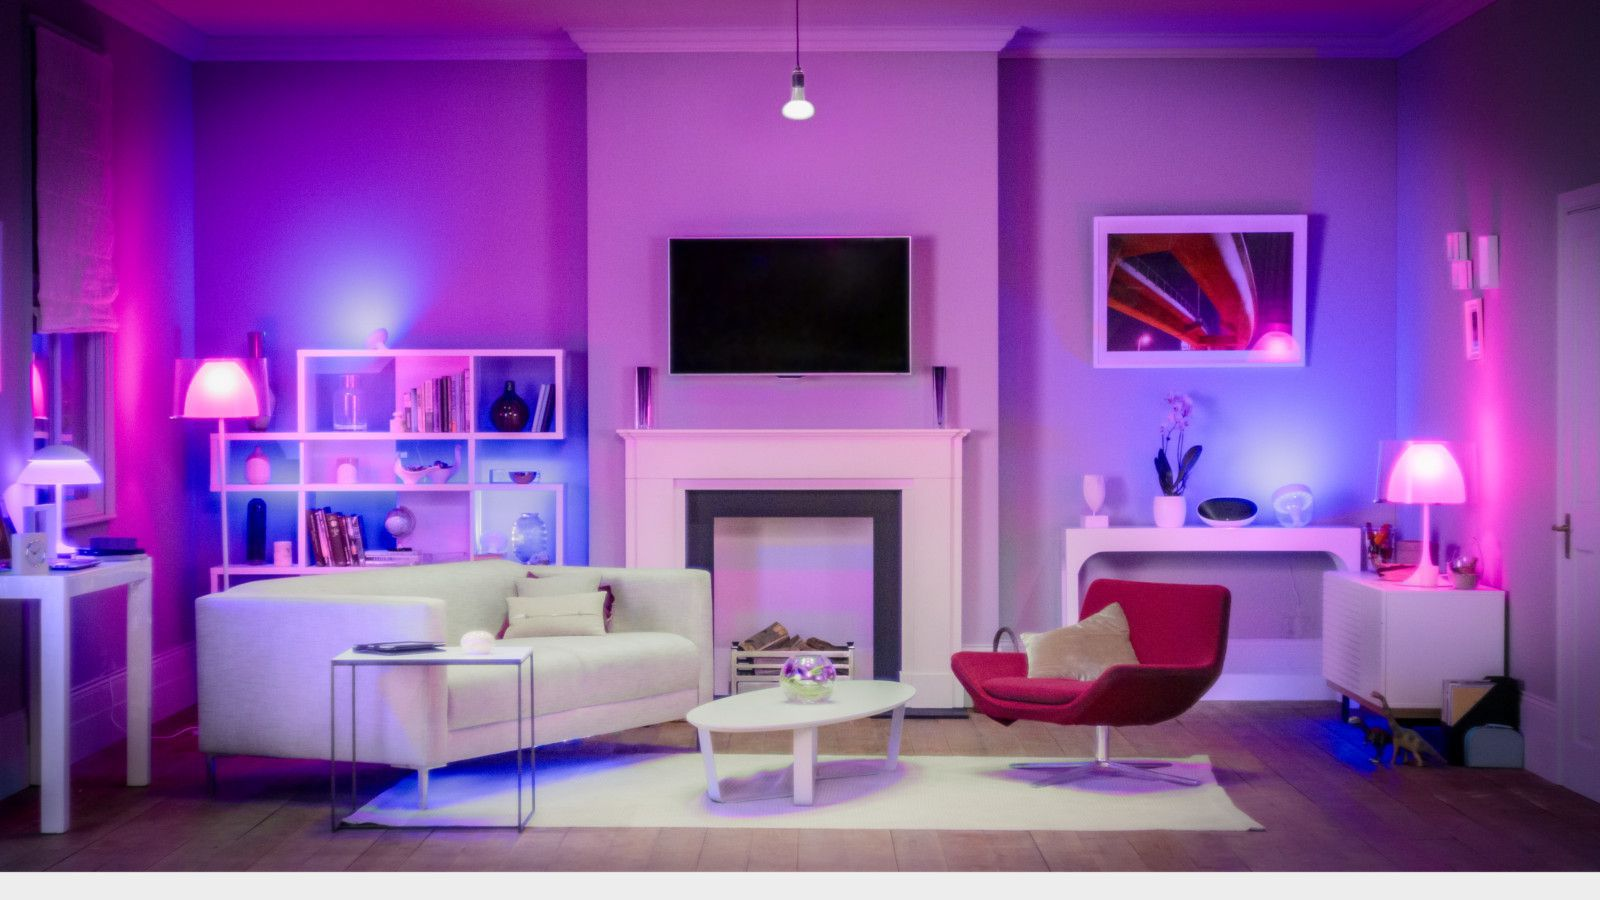 philips hue starter kit iluminacion inteligente